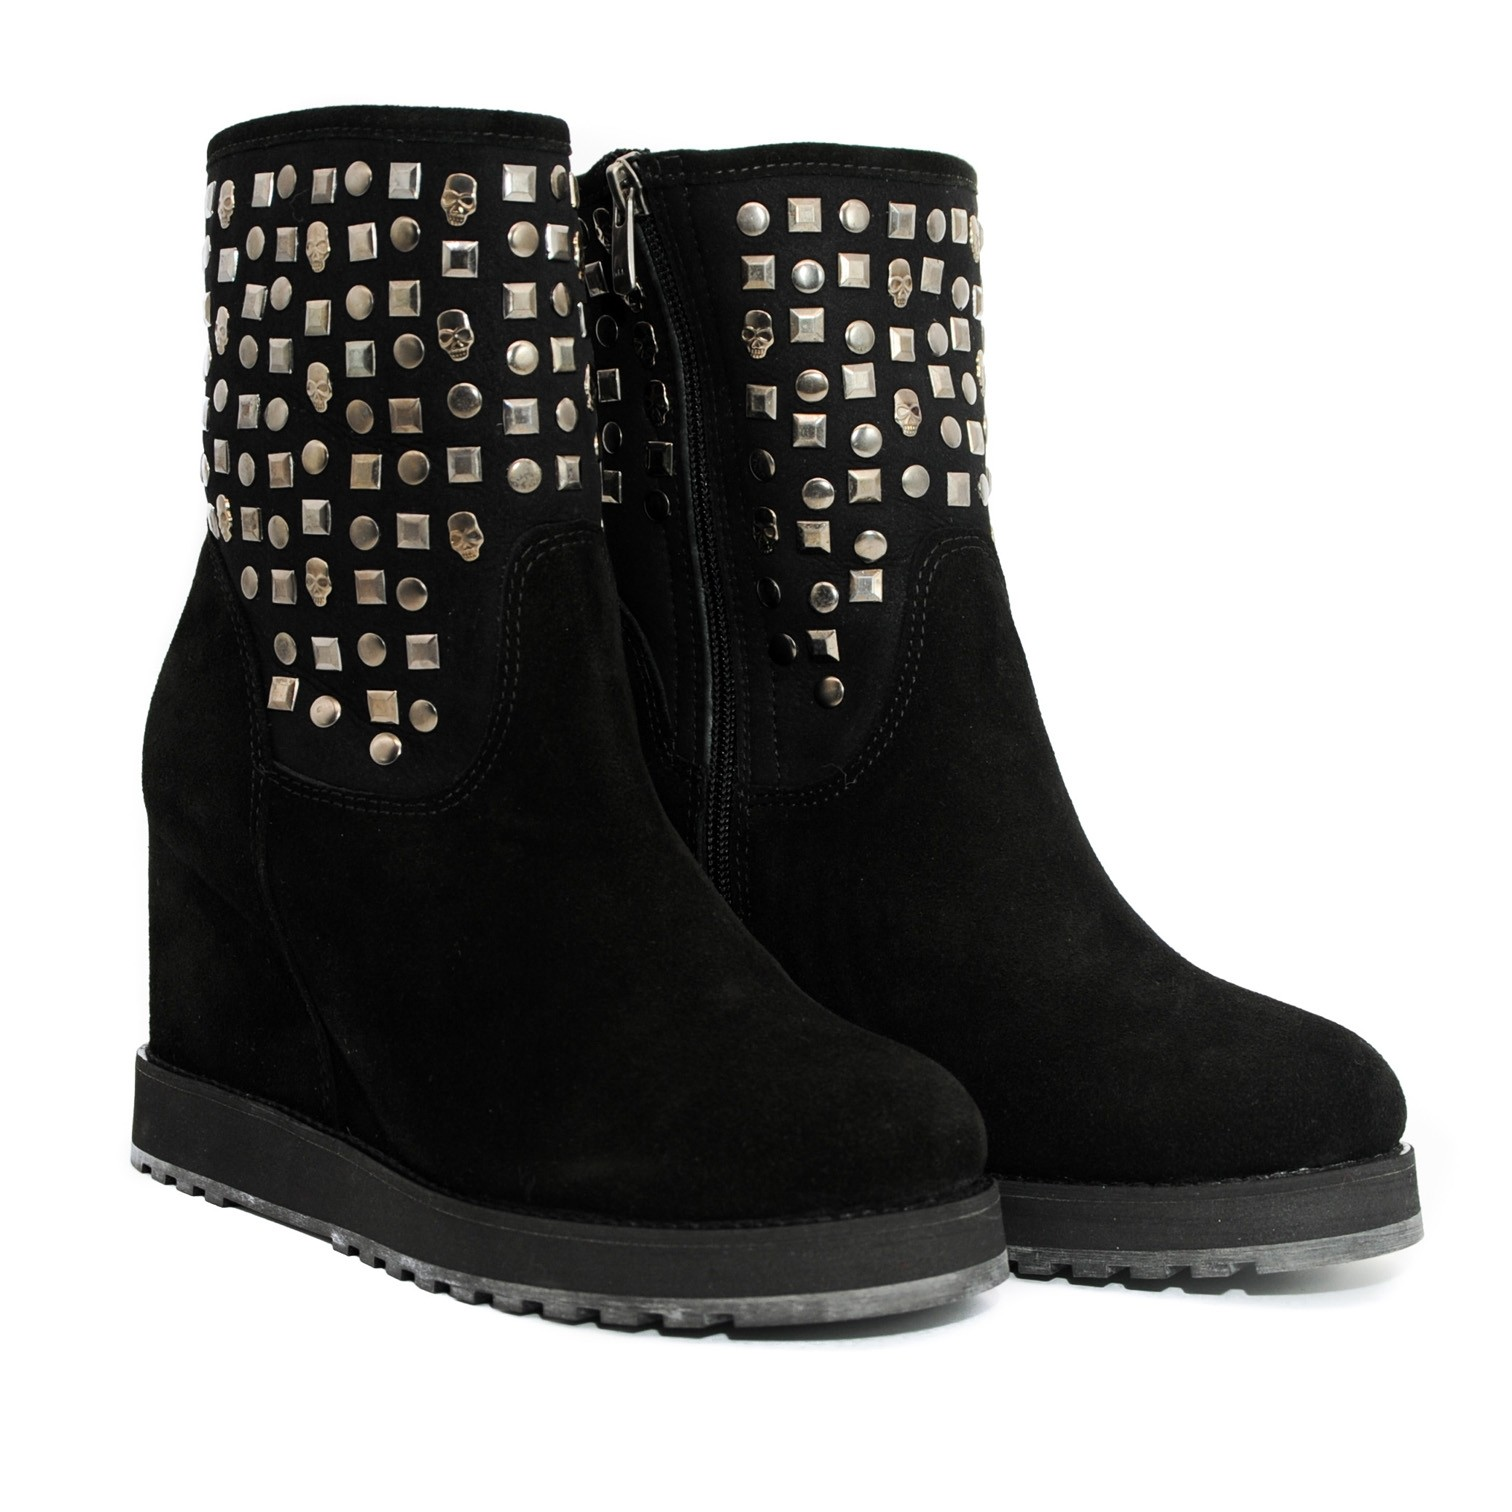 Pegia Ankle Boots Soft Suede with Raised Inner Heel and Decorative Studs - Black